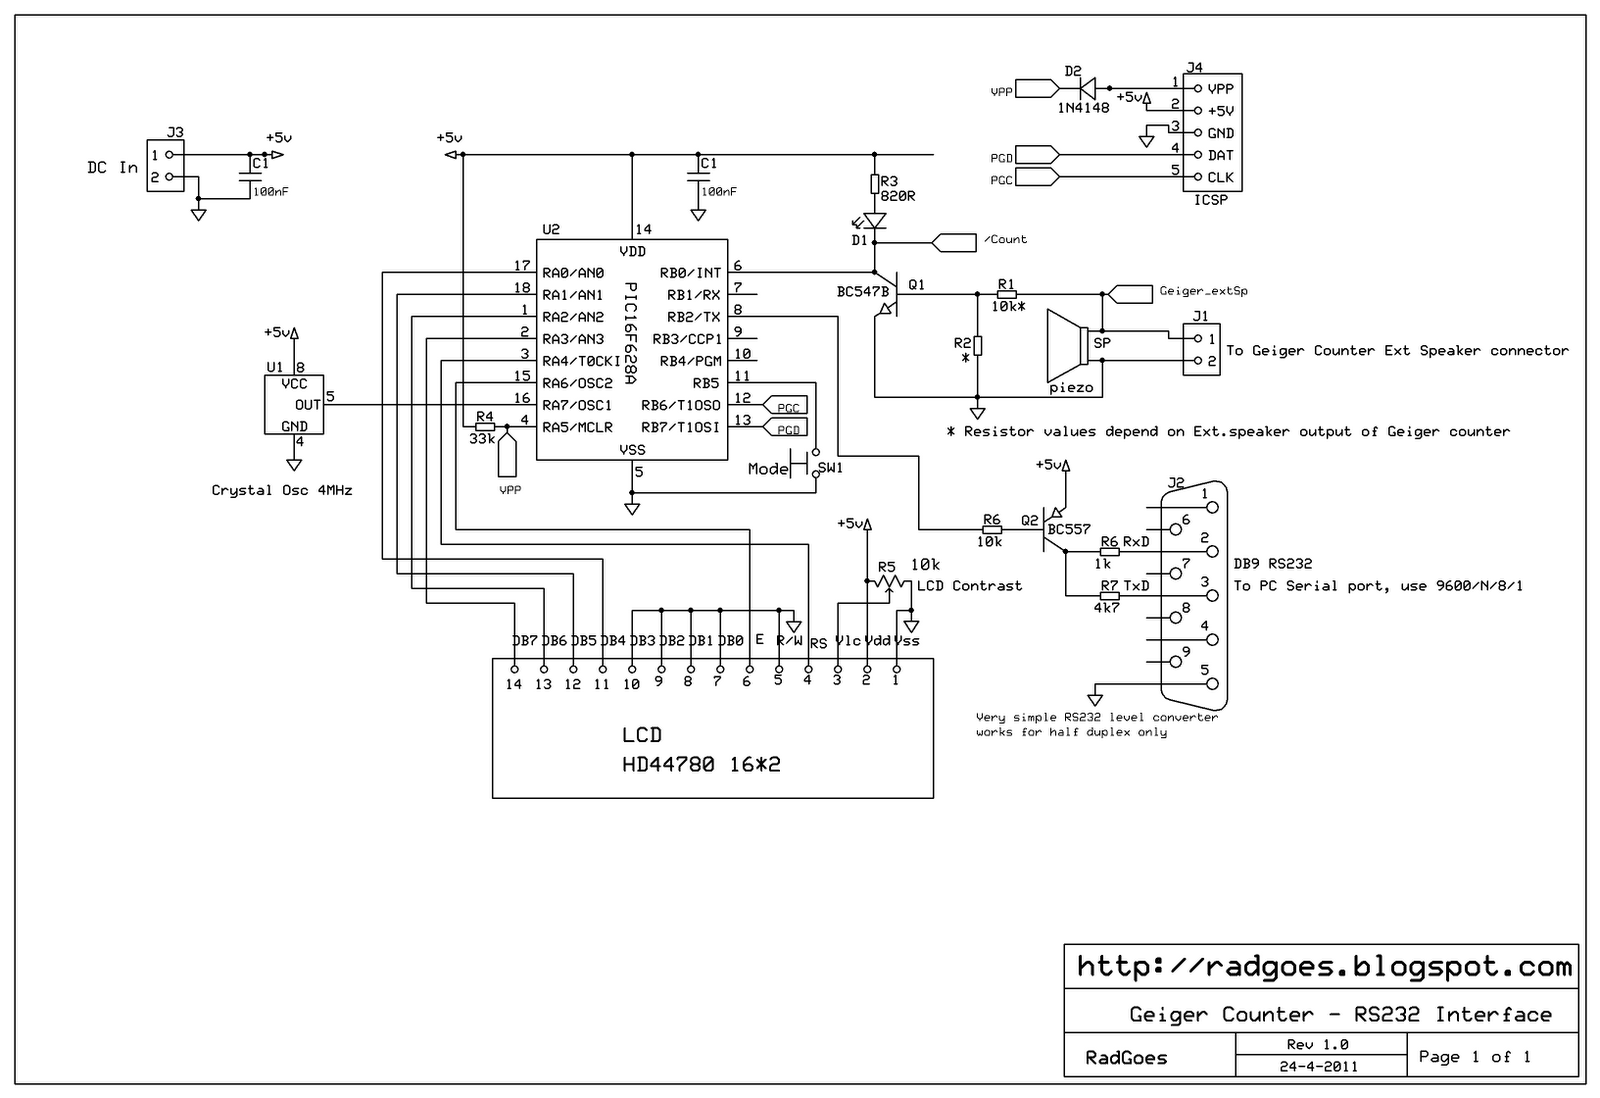 8421eb37d7f685cc9cd3e8cde4c33641 radiation in goes, zeeland (nl) geiger counter schematic